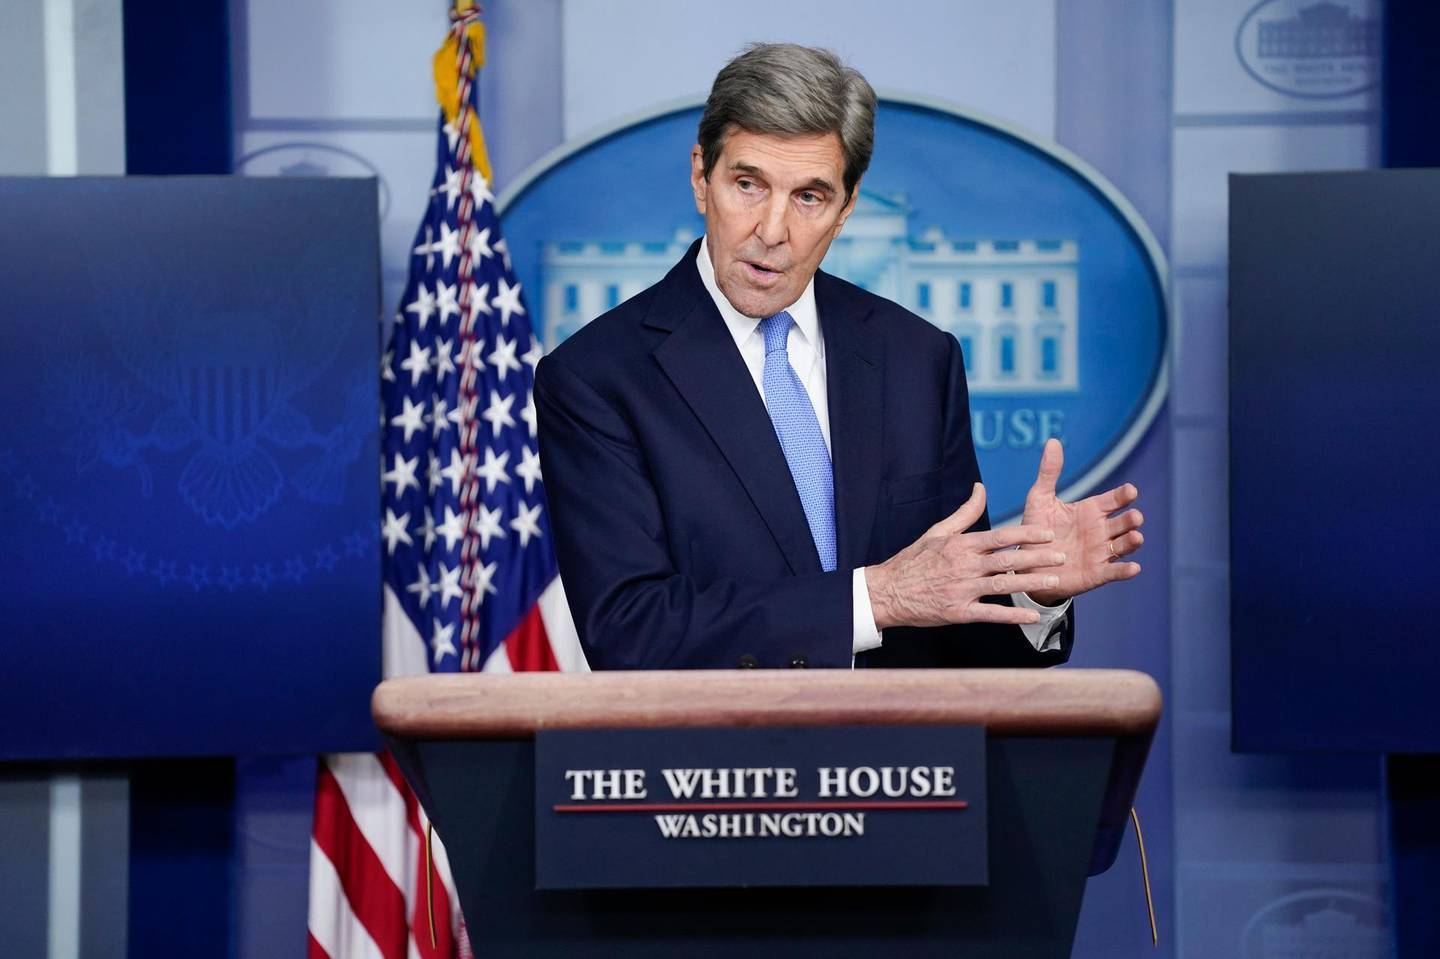 FILE - In this Jan. 27, 2021, file photo, Special Presidential Envoy for Climate John Kerry speaks during a press briefing at the White House in Washington. The world's hopes for curbing climate change hinge on action by two giant nations whose relations are deteriorating. China and the United States both say they are intent on retooling their economies to burn less climate-wrecking coal, oil and gas. But tensions between them threaten their ultimate success (AP Photo/Evan Vucci, File)